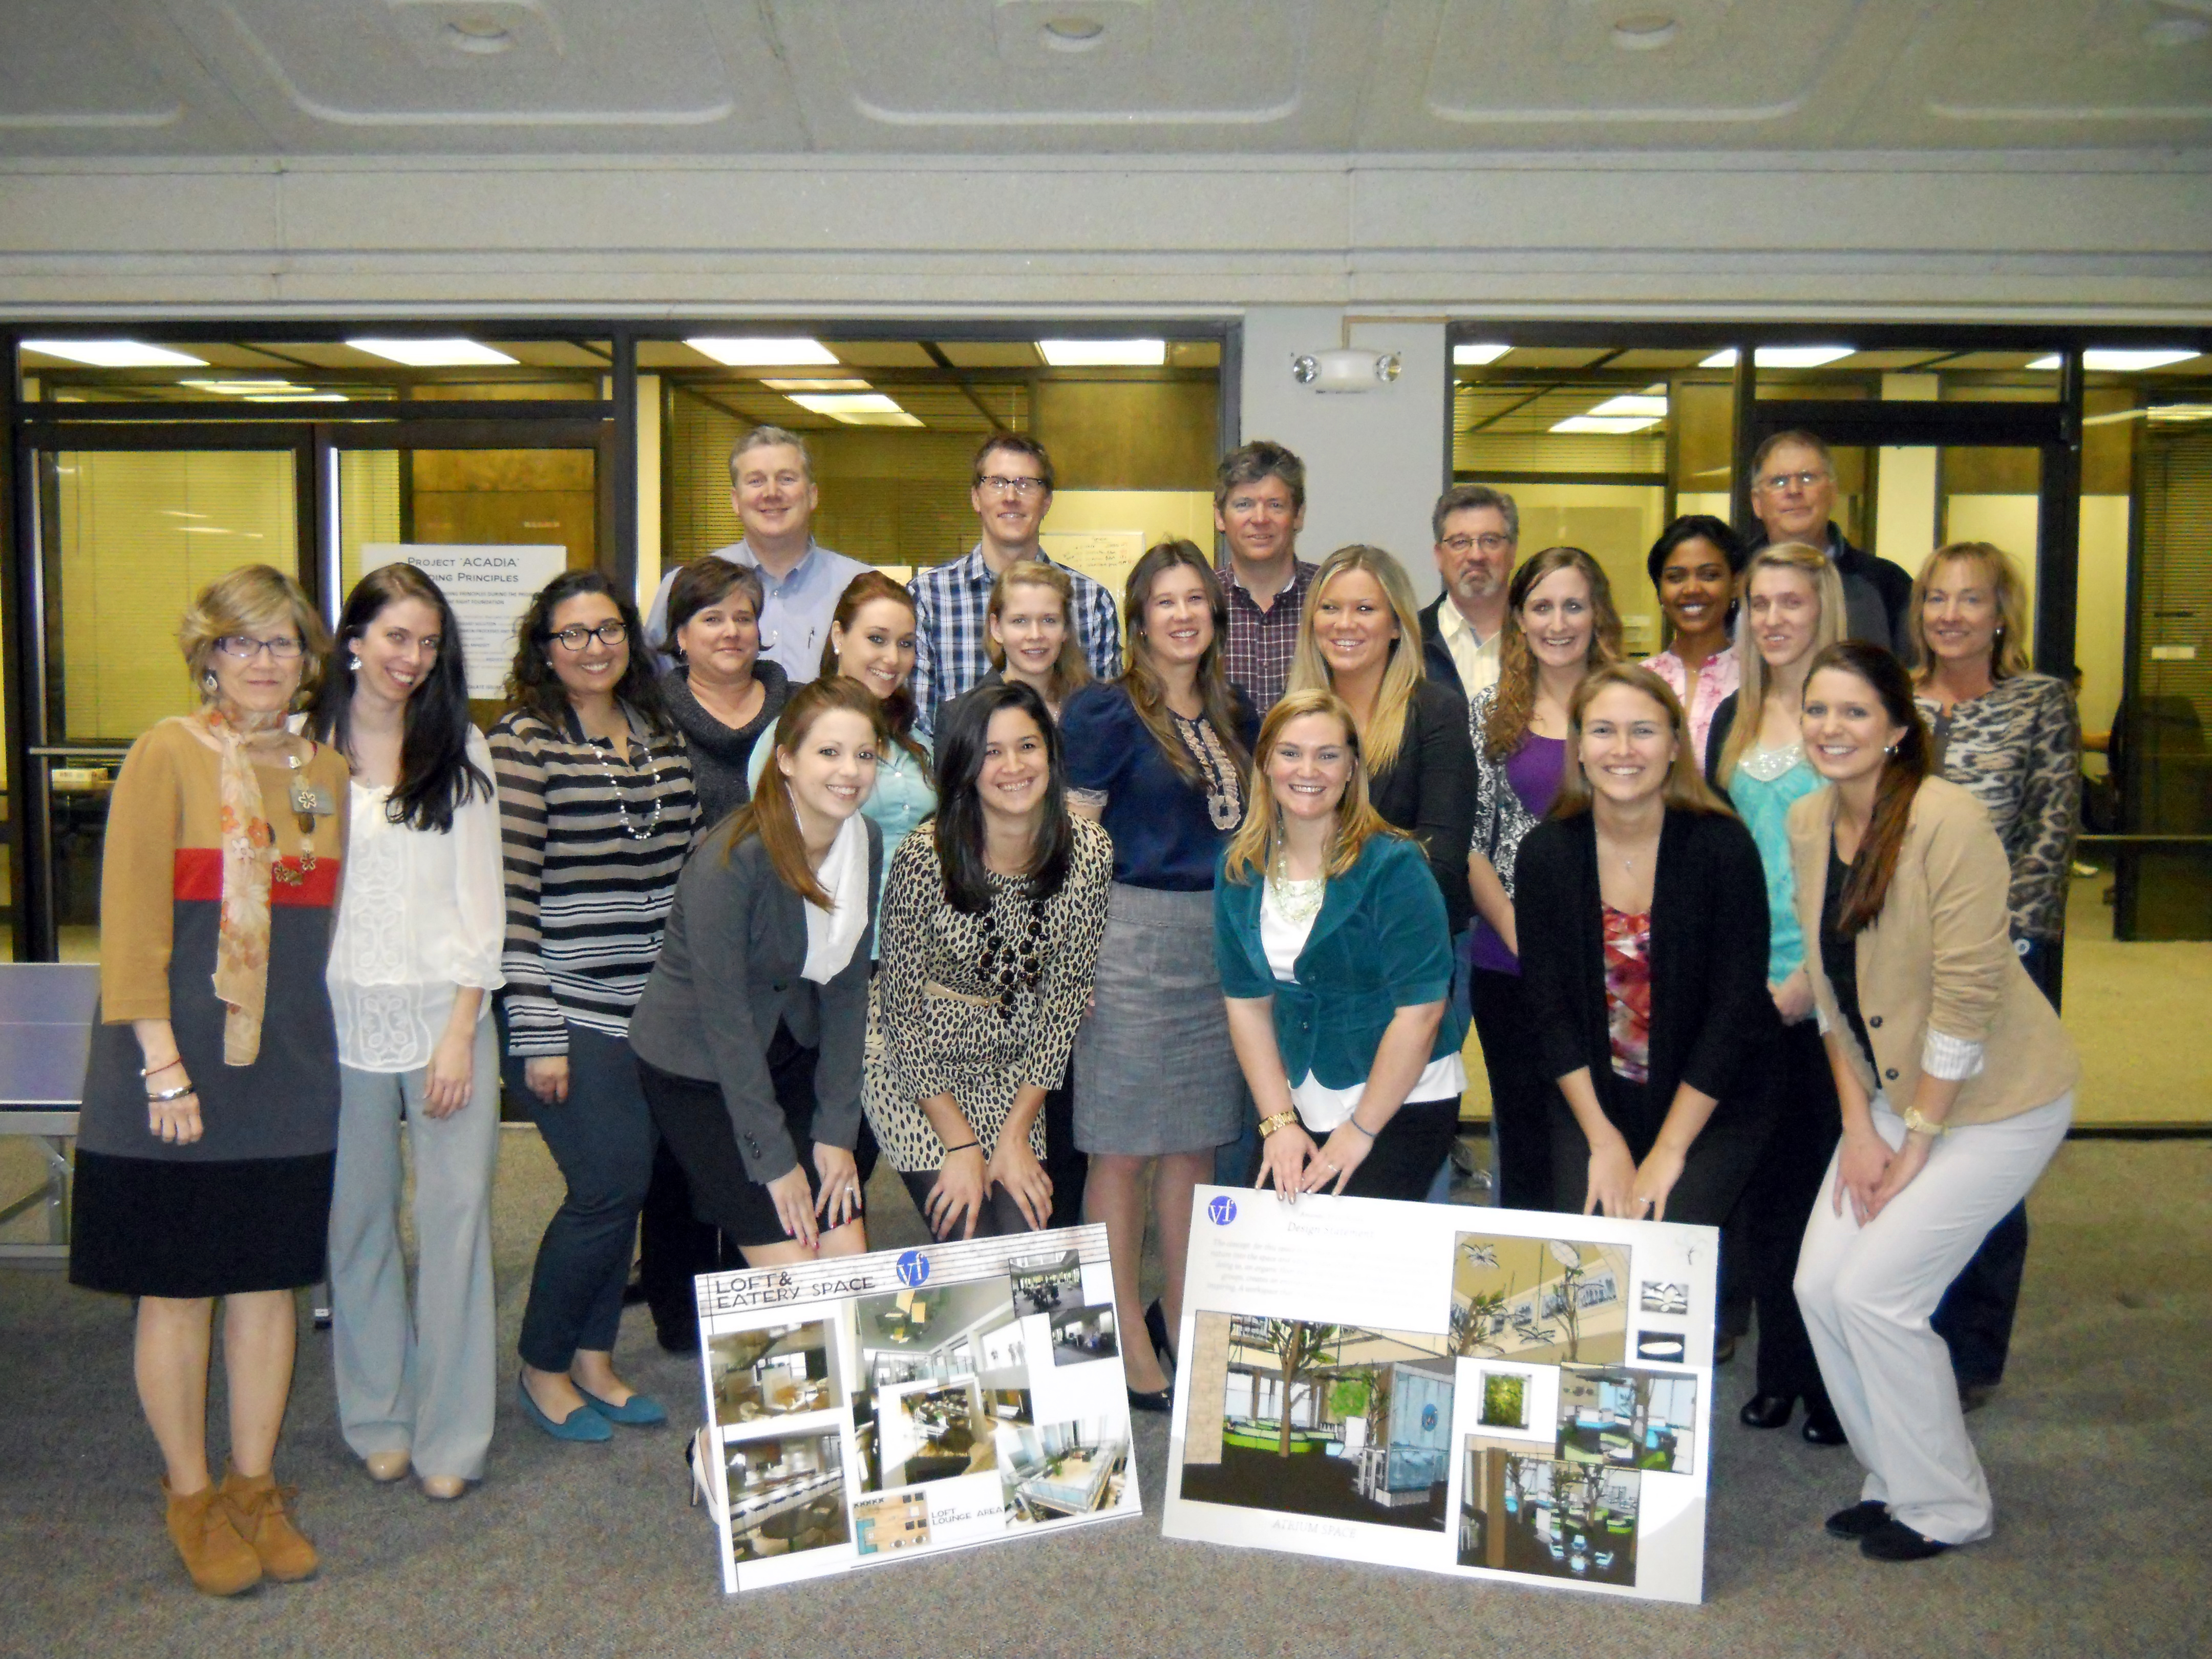 Interior Design Students Help Remodel Vf Corporation Office High Point University High Point